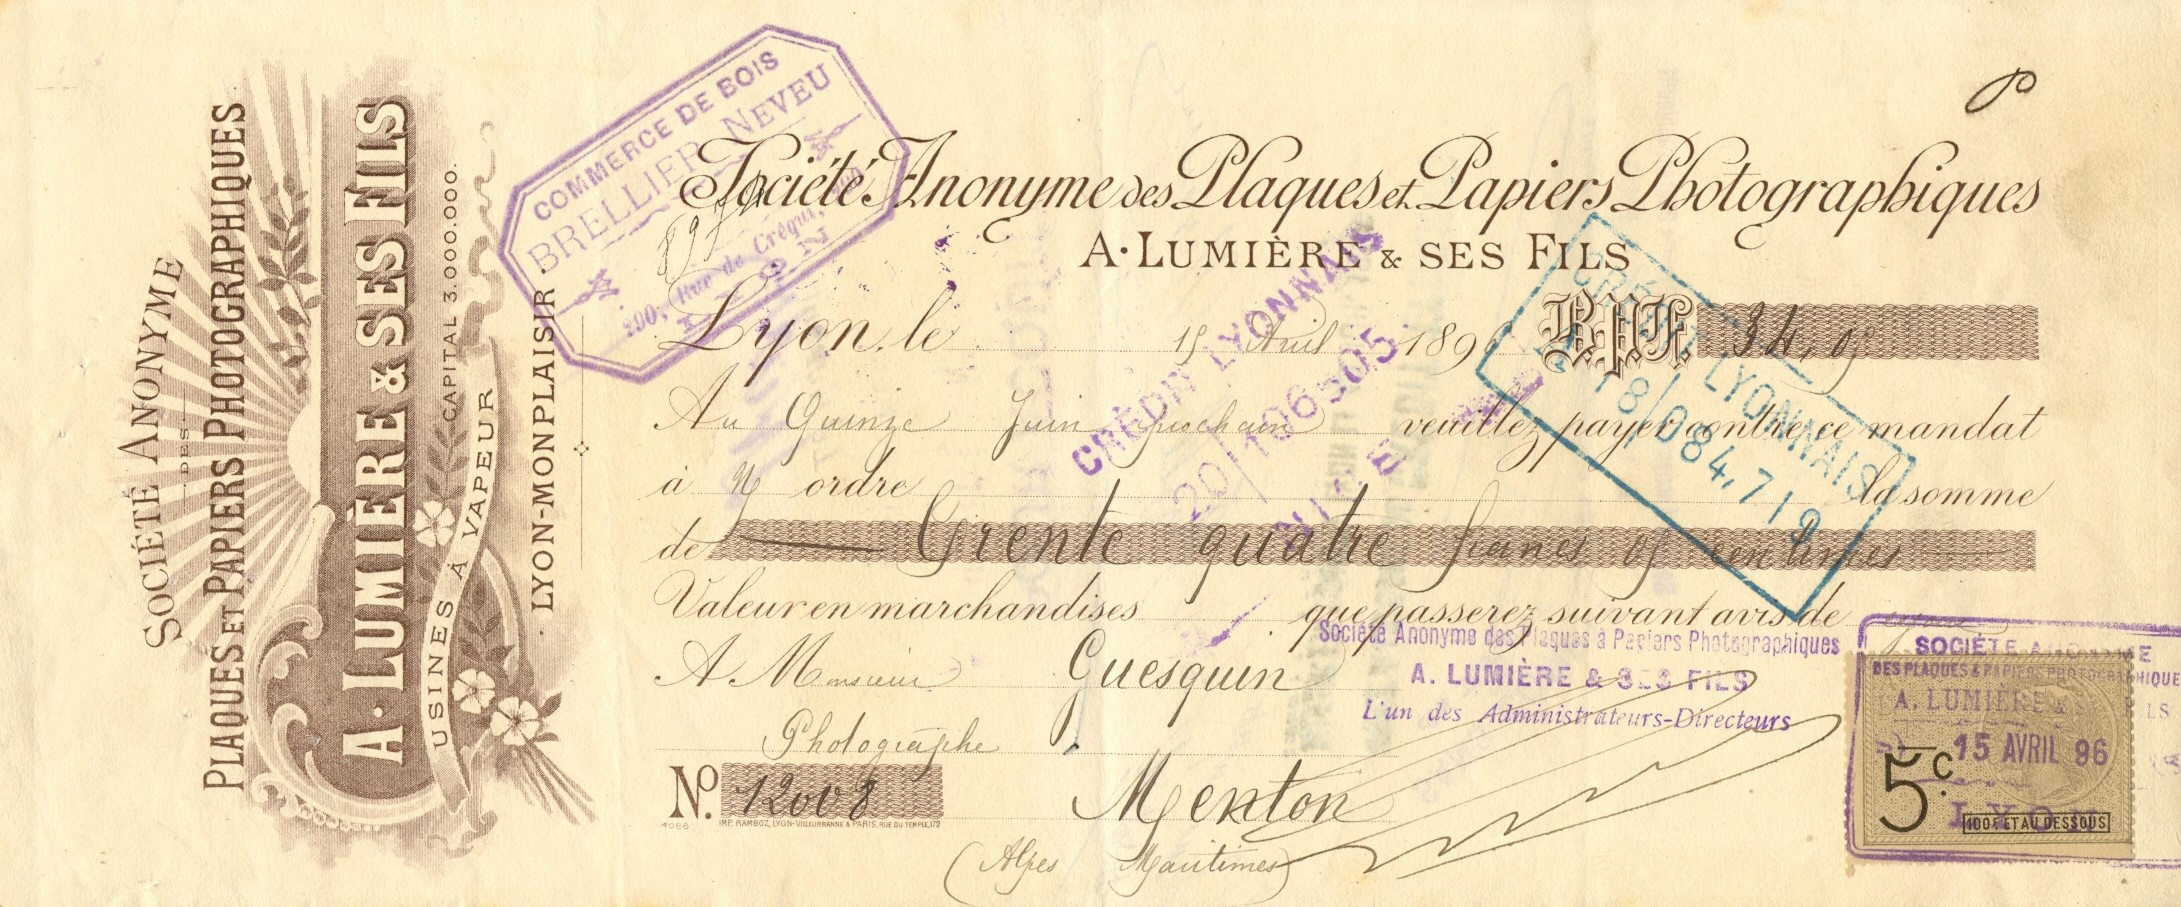 Lot 23 - LUMIERE AUGUSTE: (1862-1954) French Pion